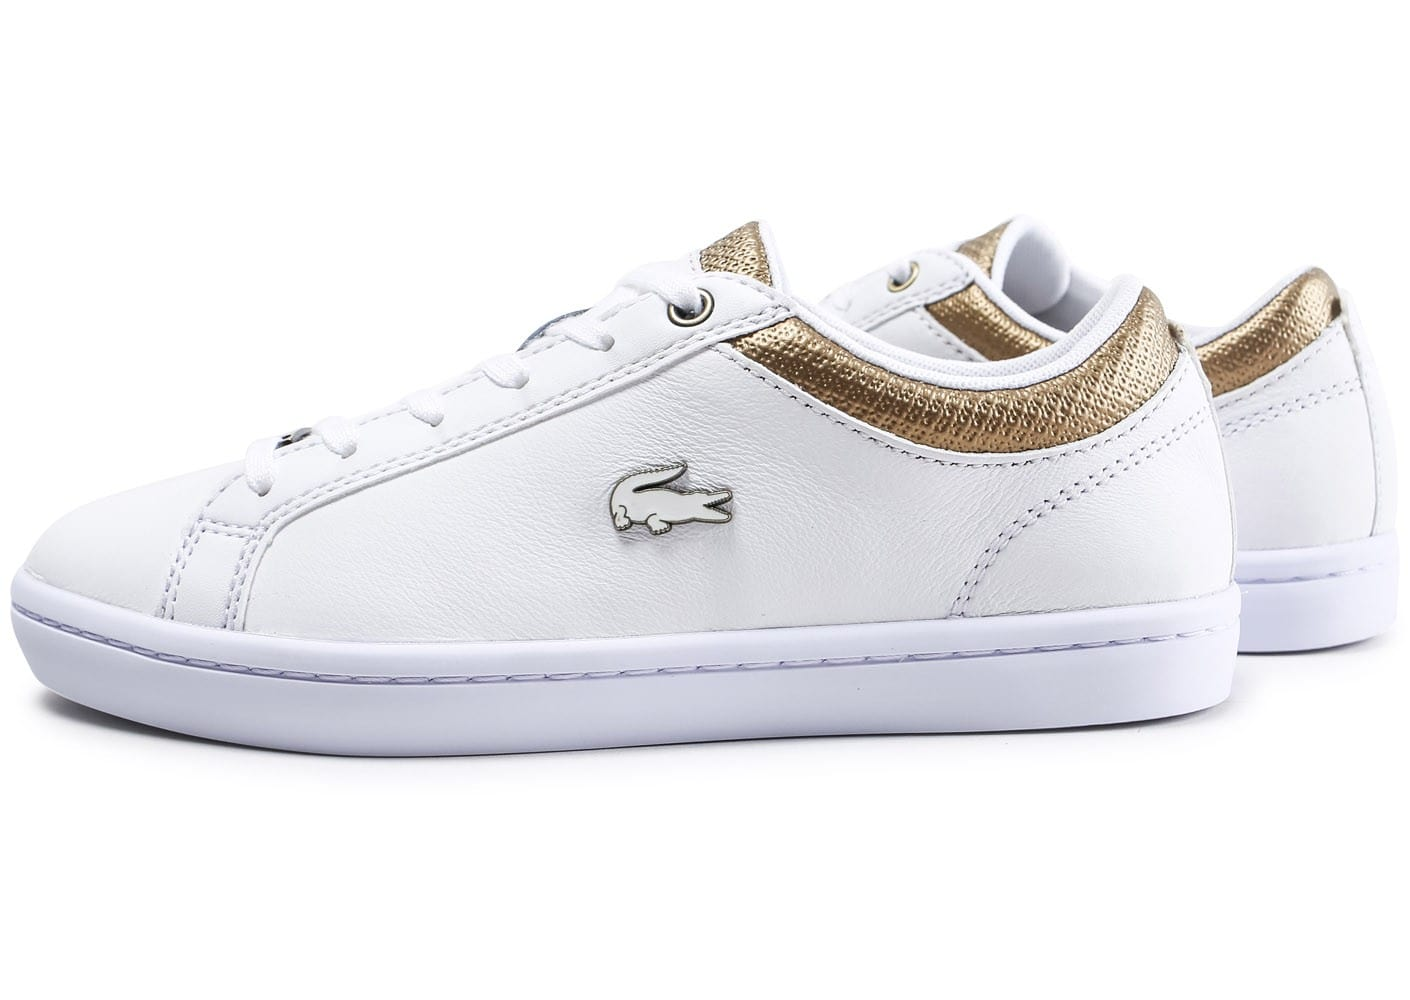 Straightset Chausport Or Et Baskets Chaussures Femme Lacoste Blanche Pkn0wO